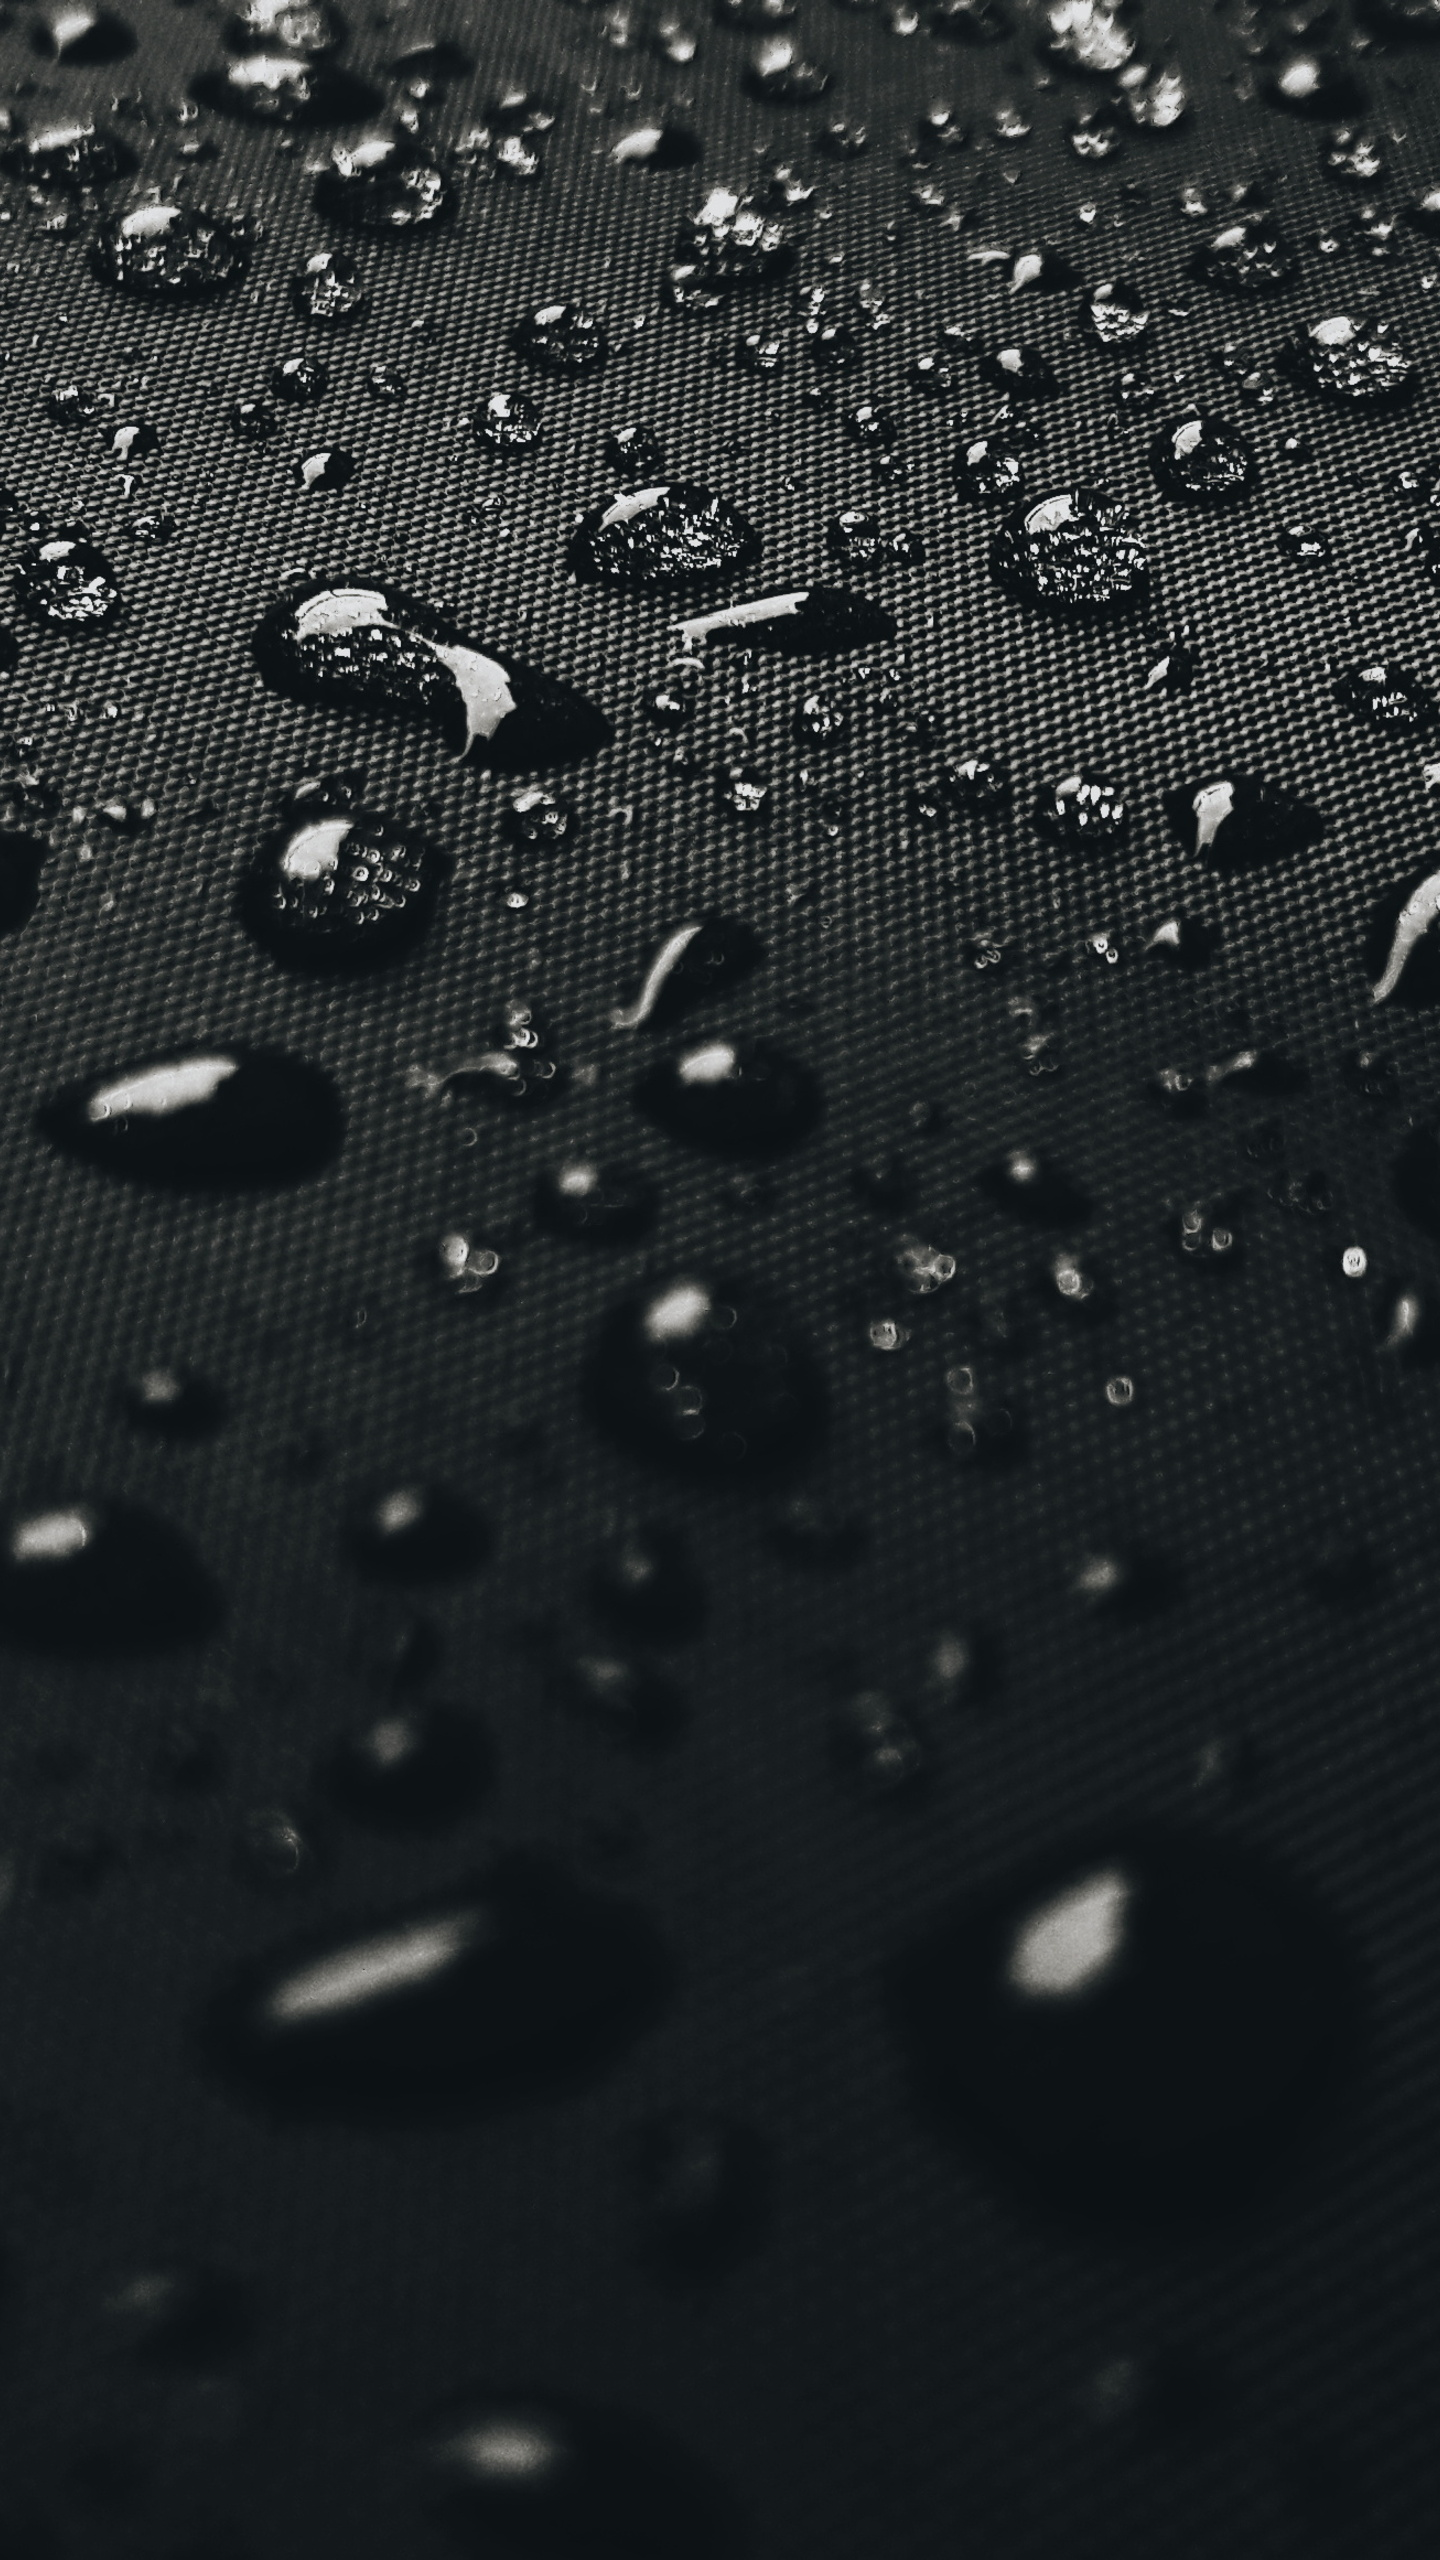 1440x2560 Water Drops On Black Surface 4k Samsung Galaxy S6 S7 Google Pixel Xl Nexus 6 6p Lg G5 Hd 4k Wallpapers Images Backgrounds Photos And Pictures